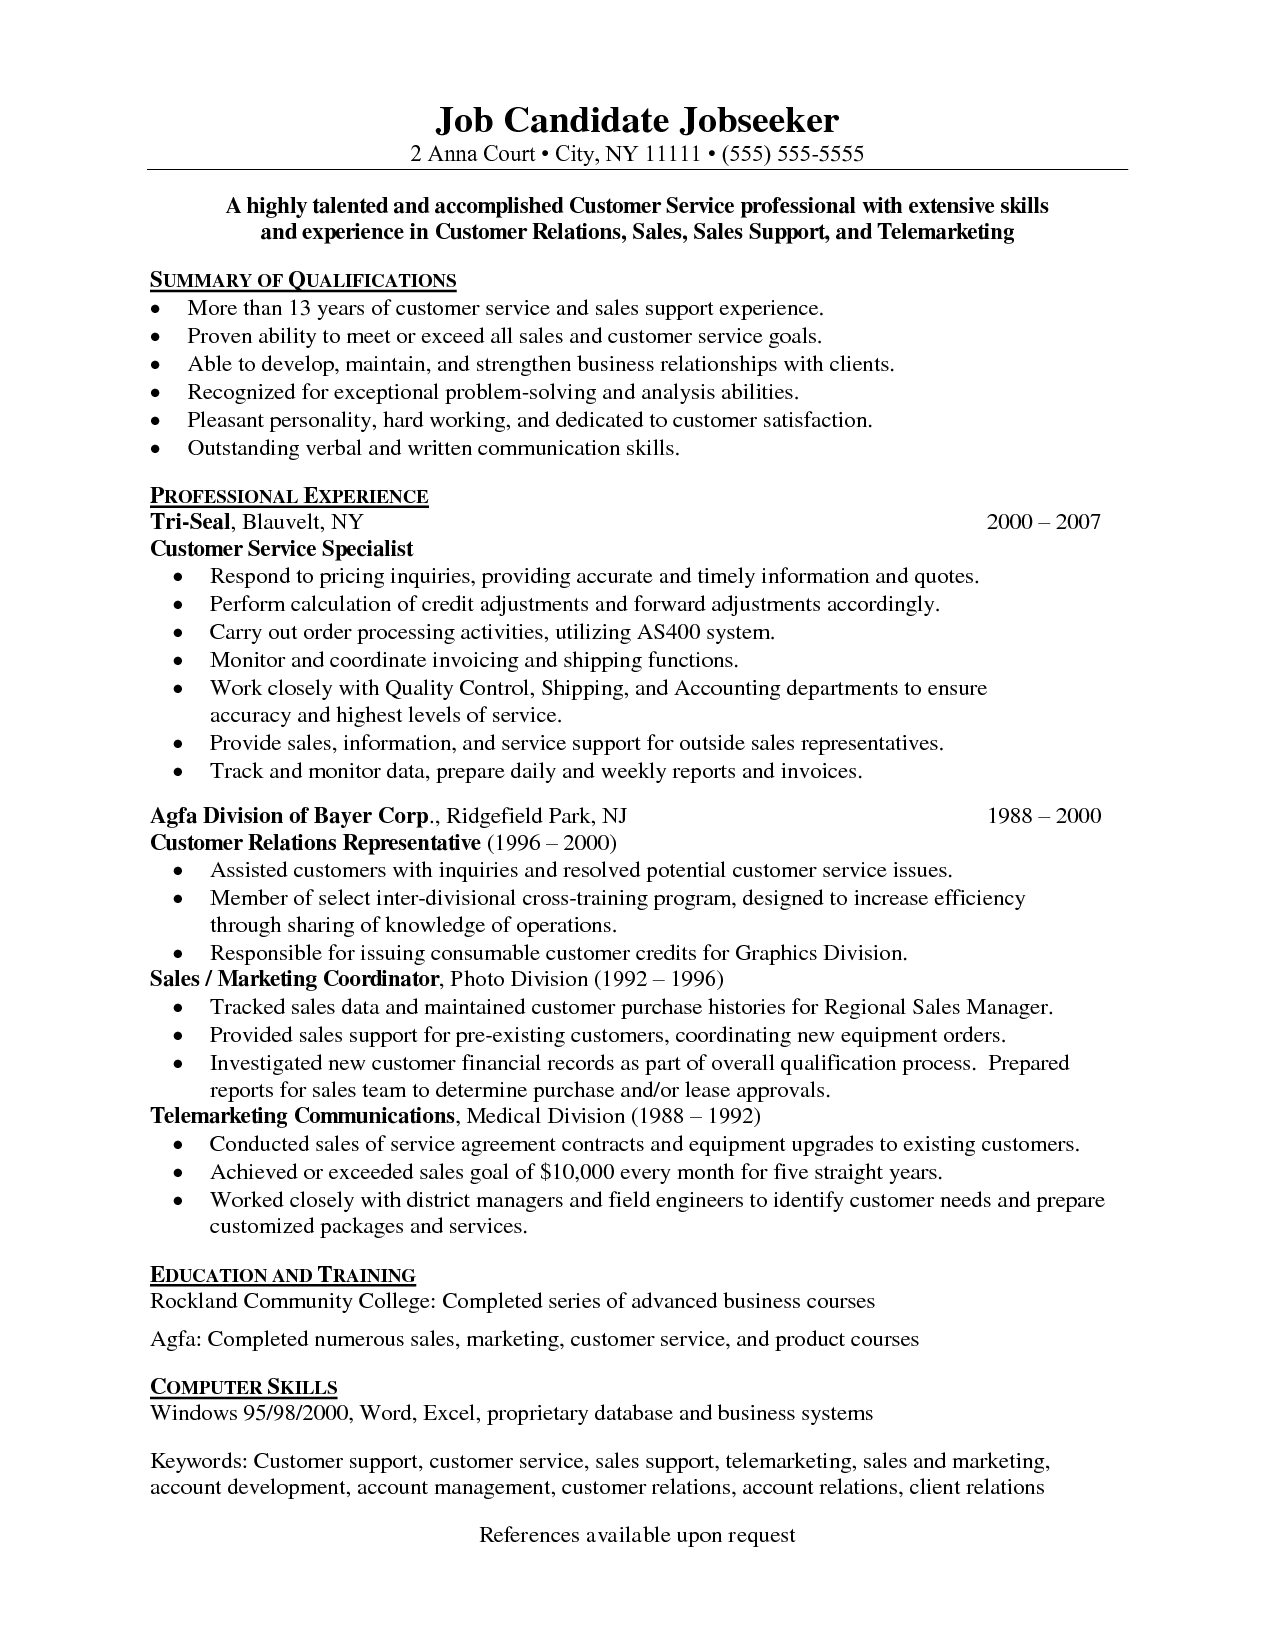 Picnictoimpeachus  Fascinating Customer Service Resume Format  Roiinvestingcom With Glamorous Customer Service Resume Format  With Endearing Elementary Teacher Resume Template Also Resume Outline Template In Addition Help Me Build A Resume And Registered Dietitian Resume As Well As Resume Cover Letter Template Free Additionally Cfo Resumes From Roiinvestingcom With Picnictoimpeachus  Glamorous Customer Service Resume Format  Roiinvestingcom With Endearing Customer Service Resume Format  And Fascinating Elementary Teacher Resume Template Also Resume Outline Template In Addition Help Me Build A Resume From Roiinvestingcom